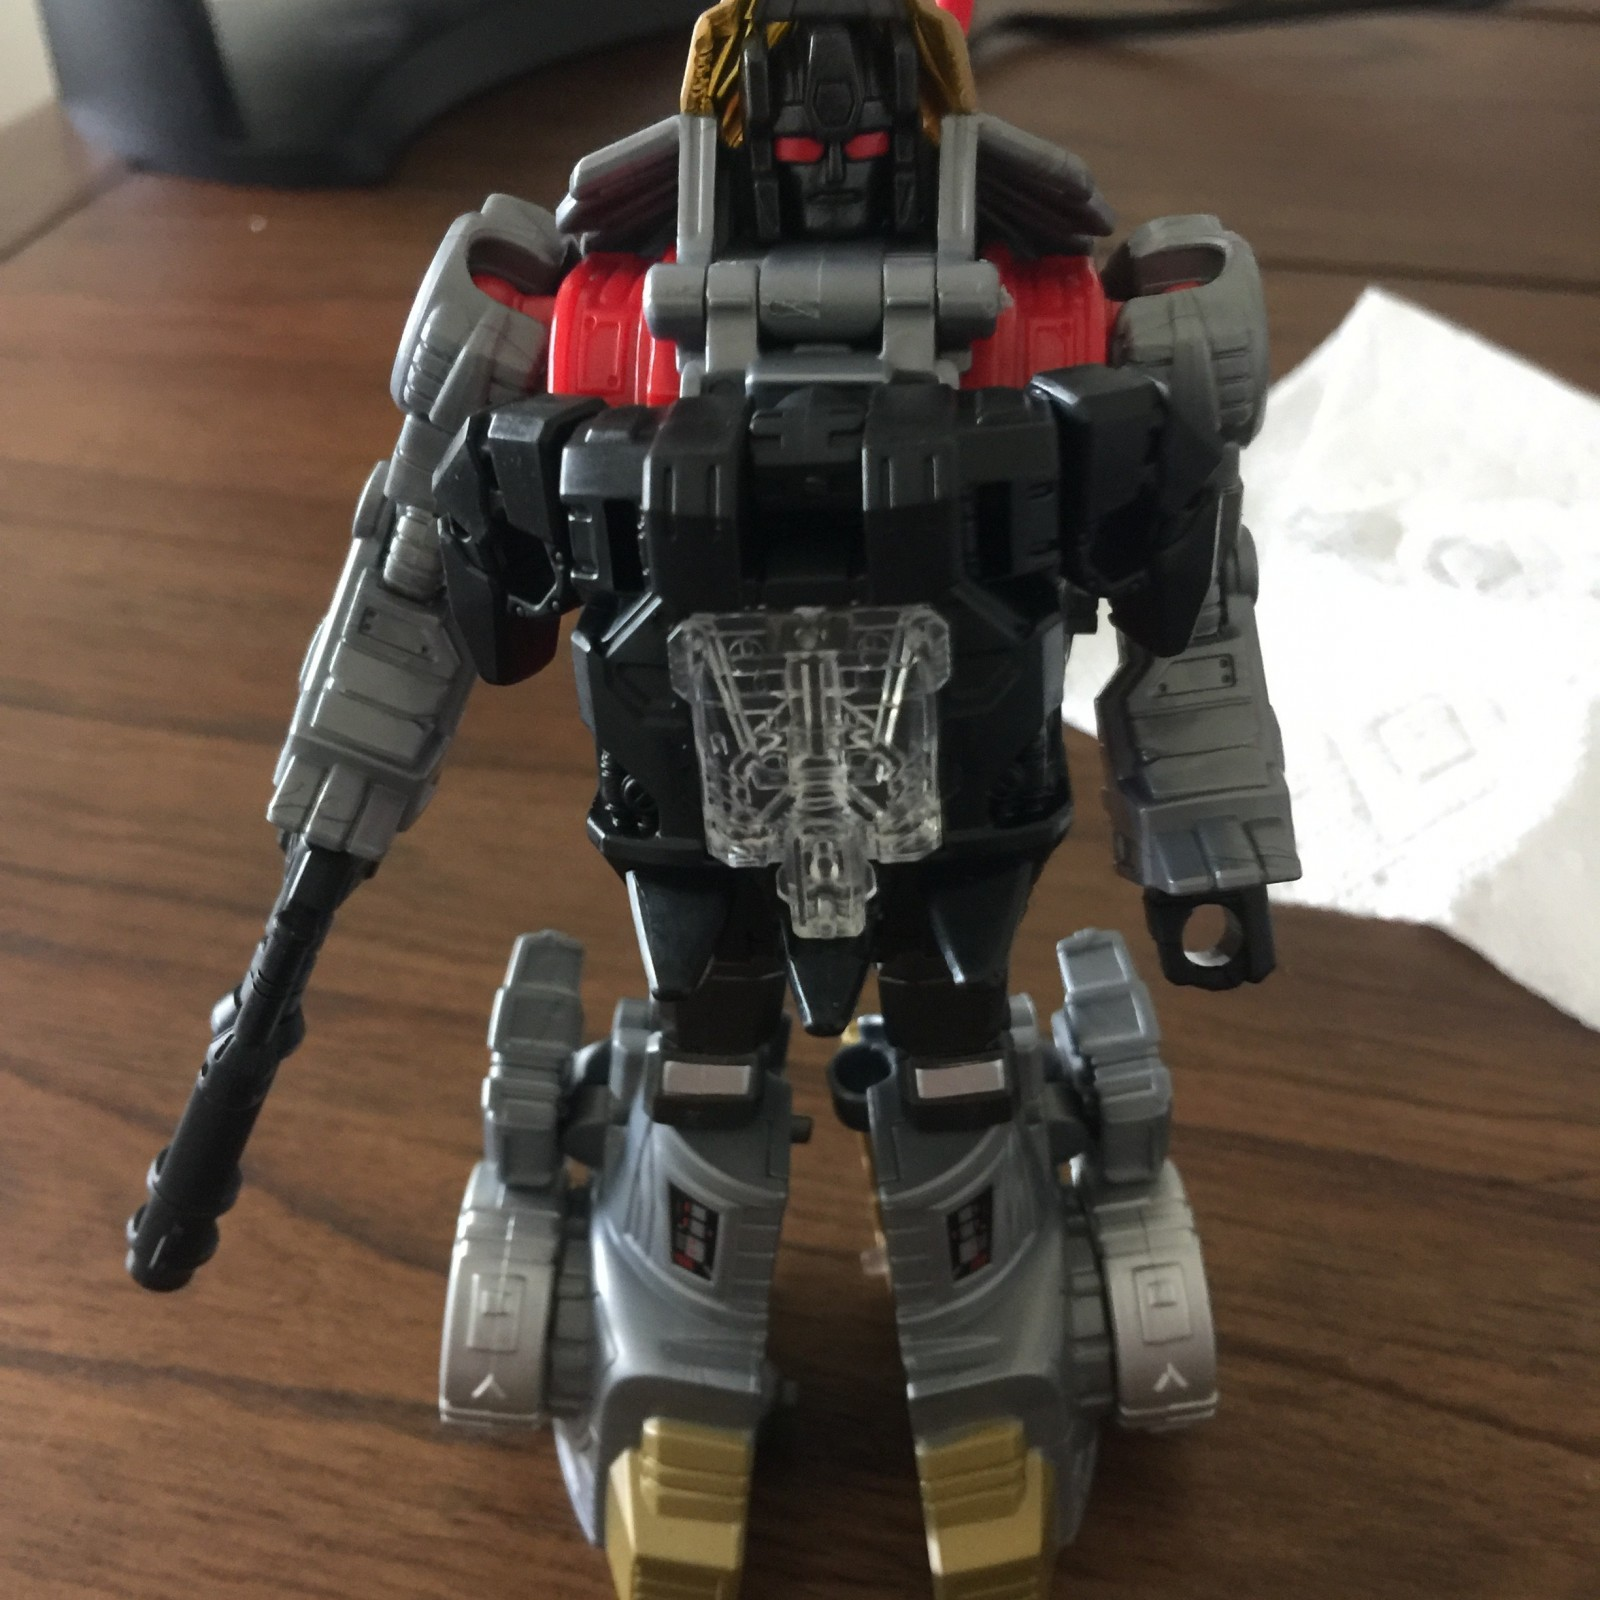 Transformers News: More In Hand Images of Transformers Power of the Primes Swoop and Slug Showing Combined Modes